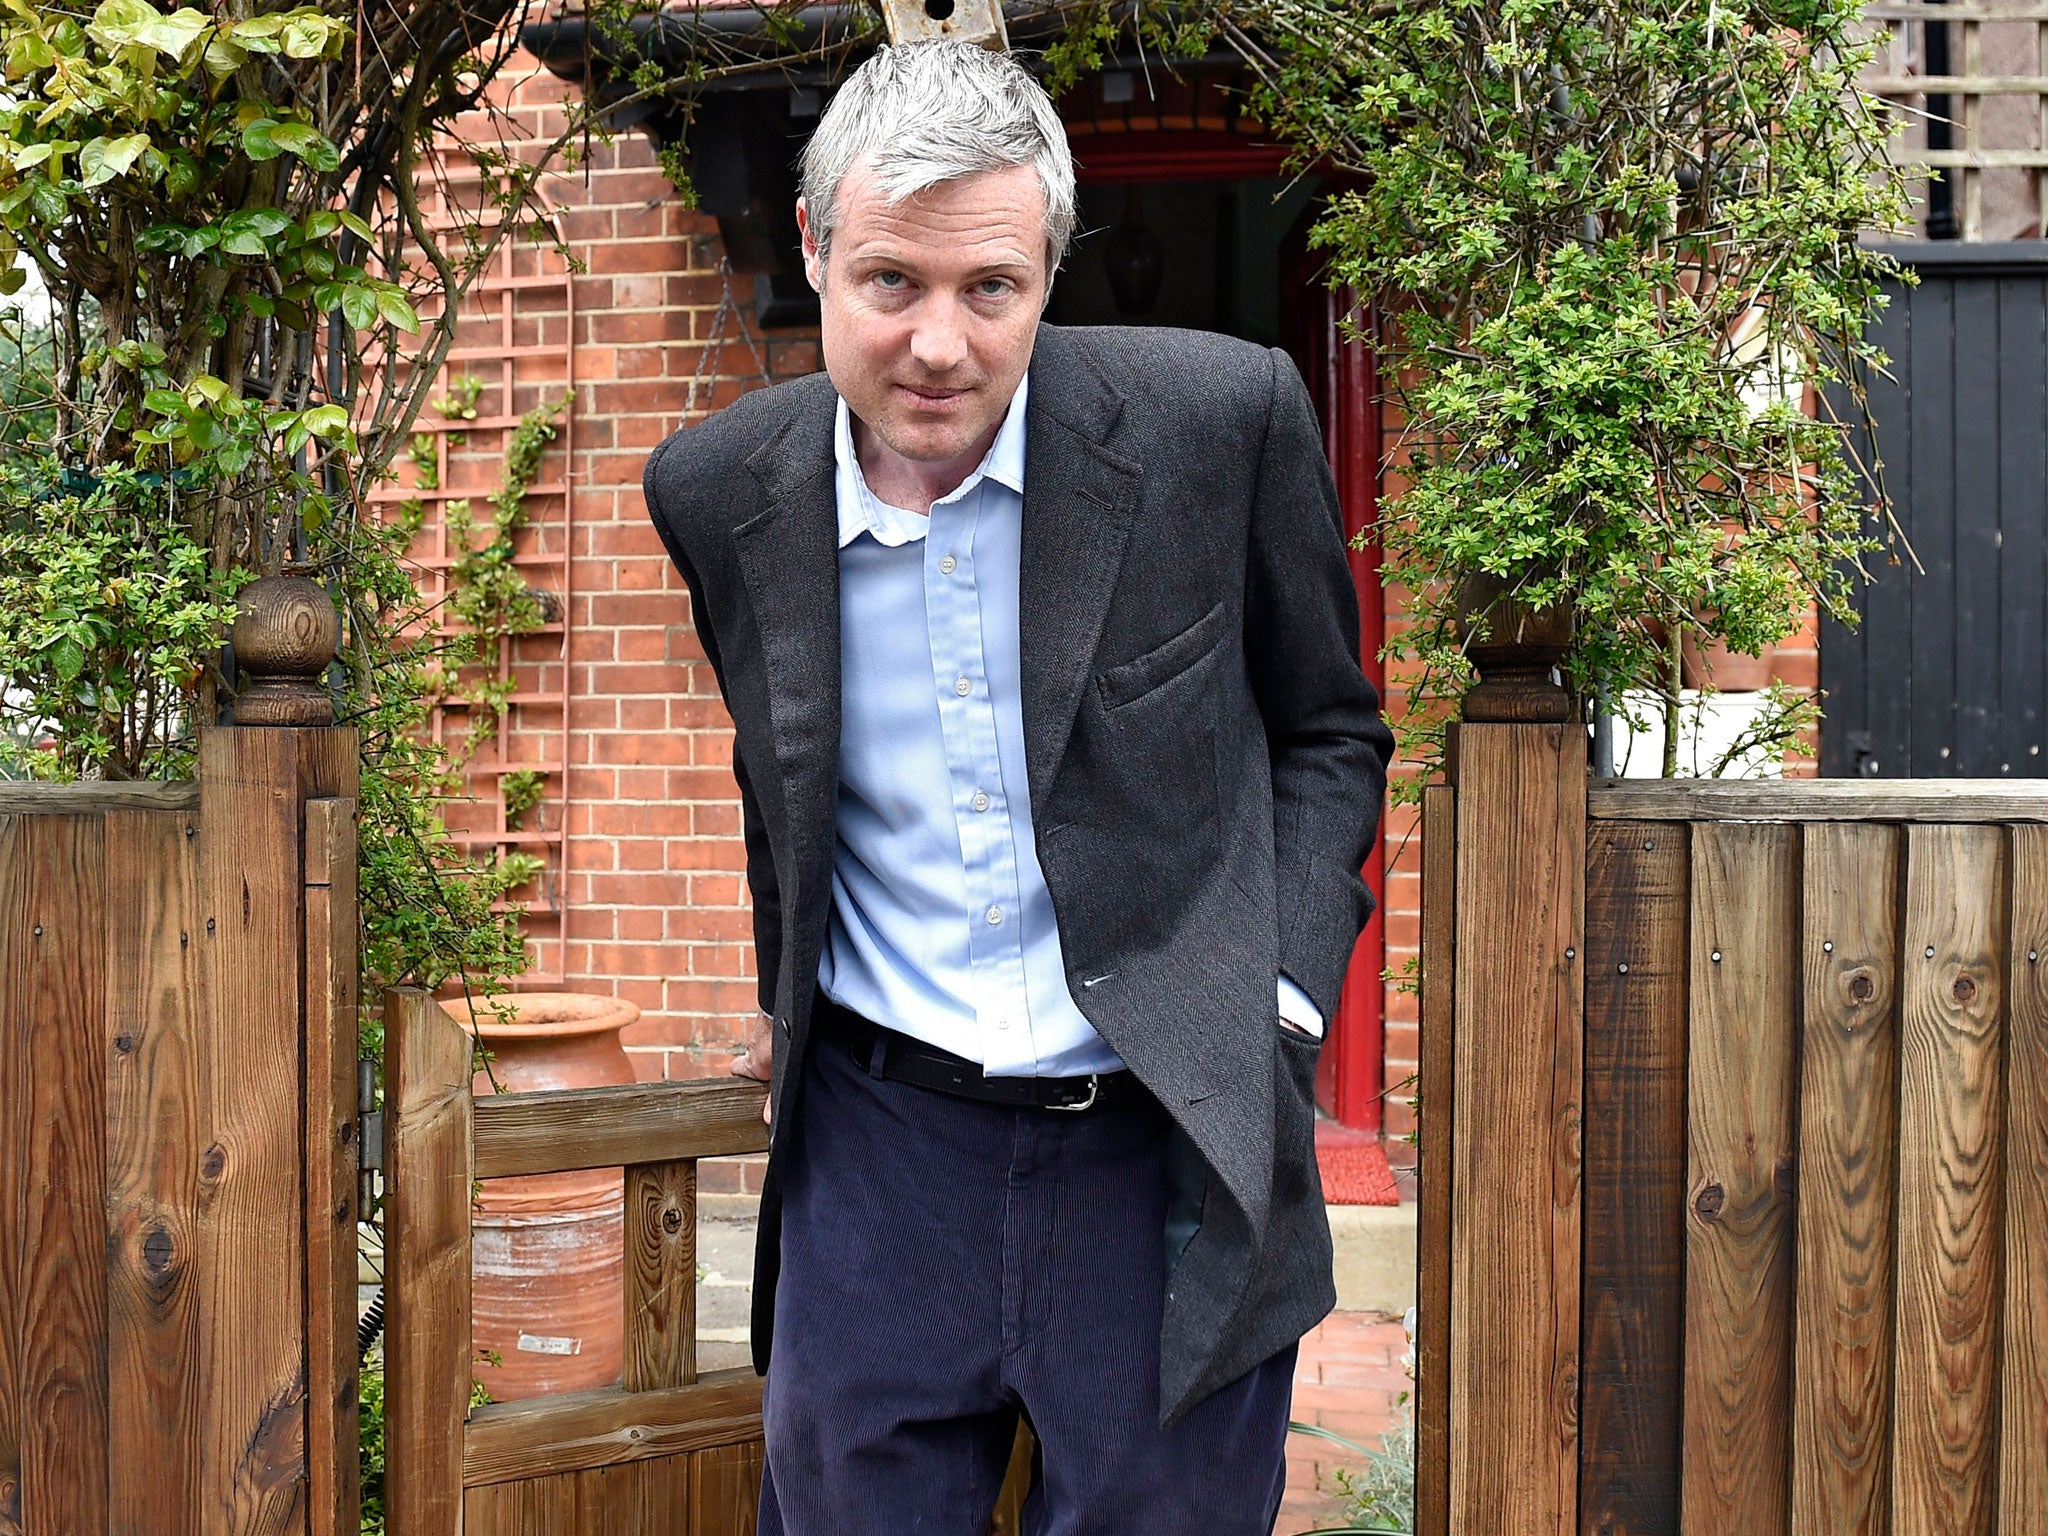 Tory MP Zac Goldsmith links Barcelona terror attack to Labour's Momentum group